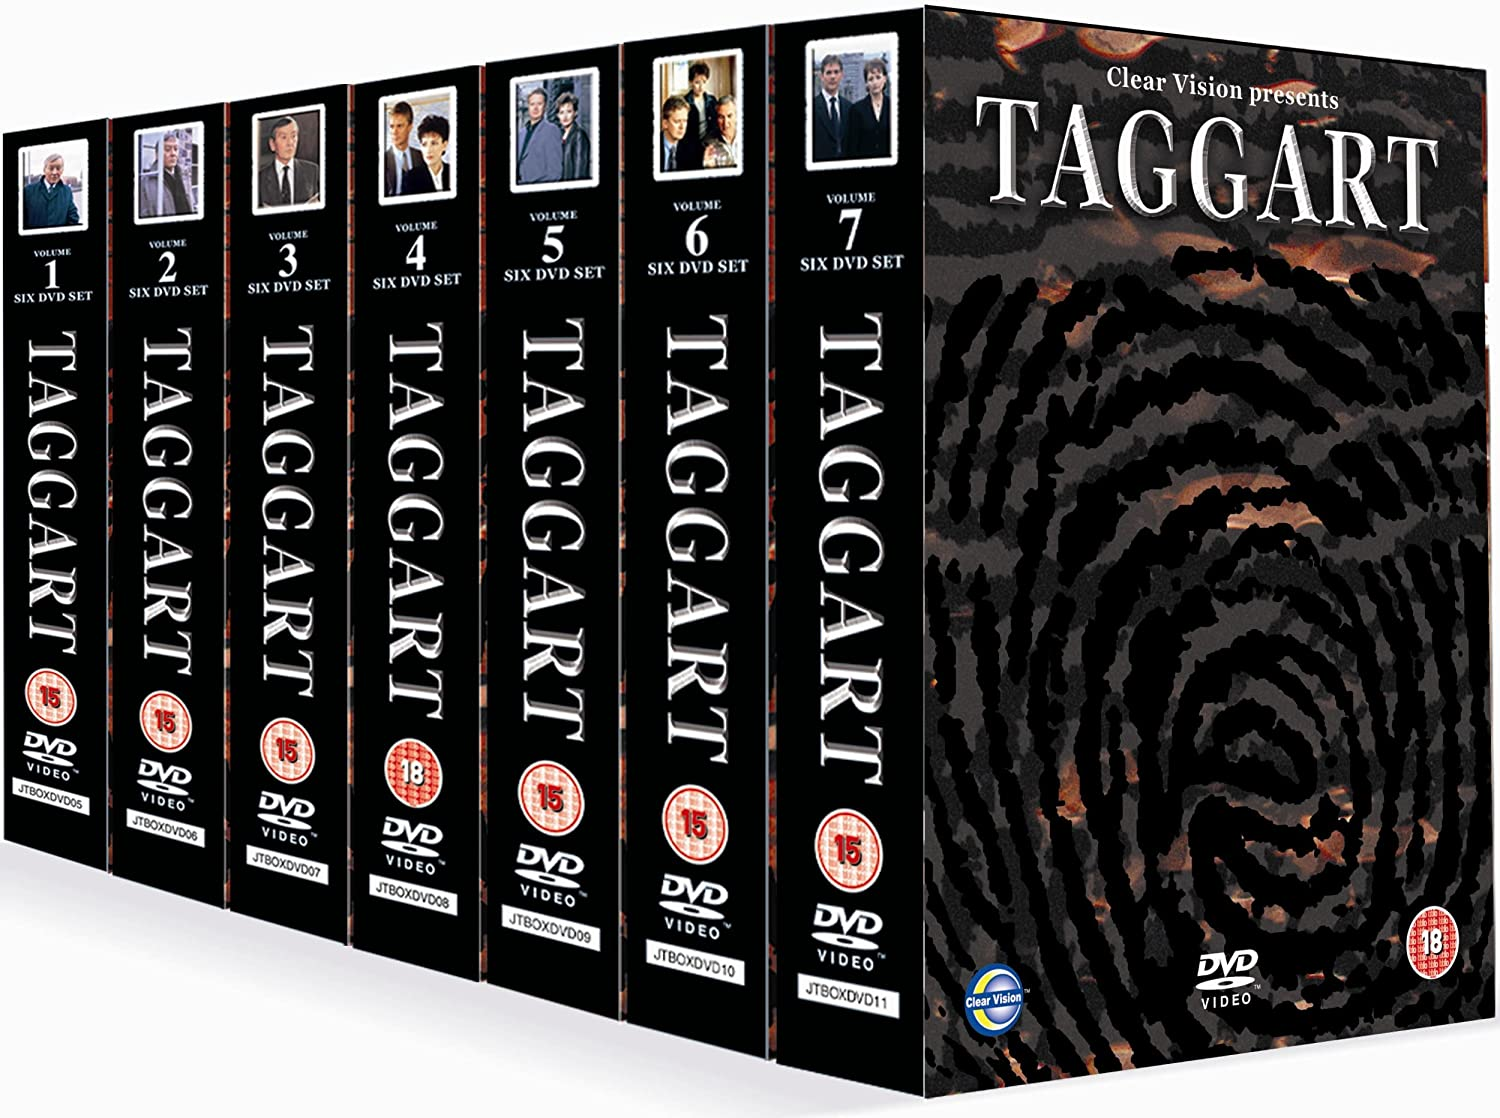 Taggart Collection Dvd42 Discs Amazoncouk Blythe